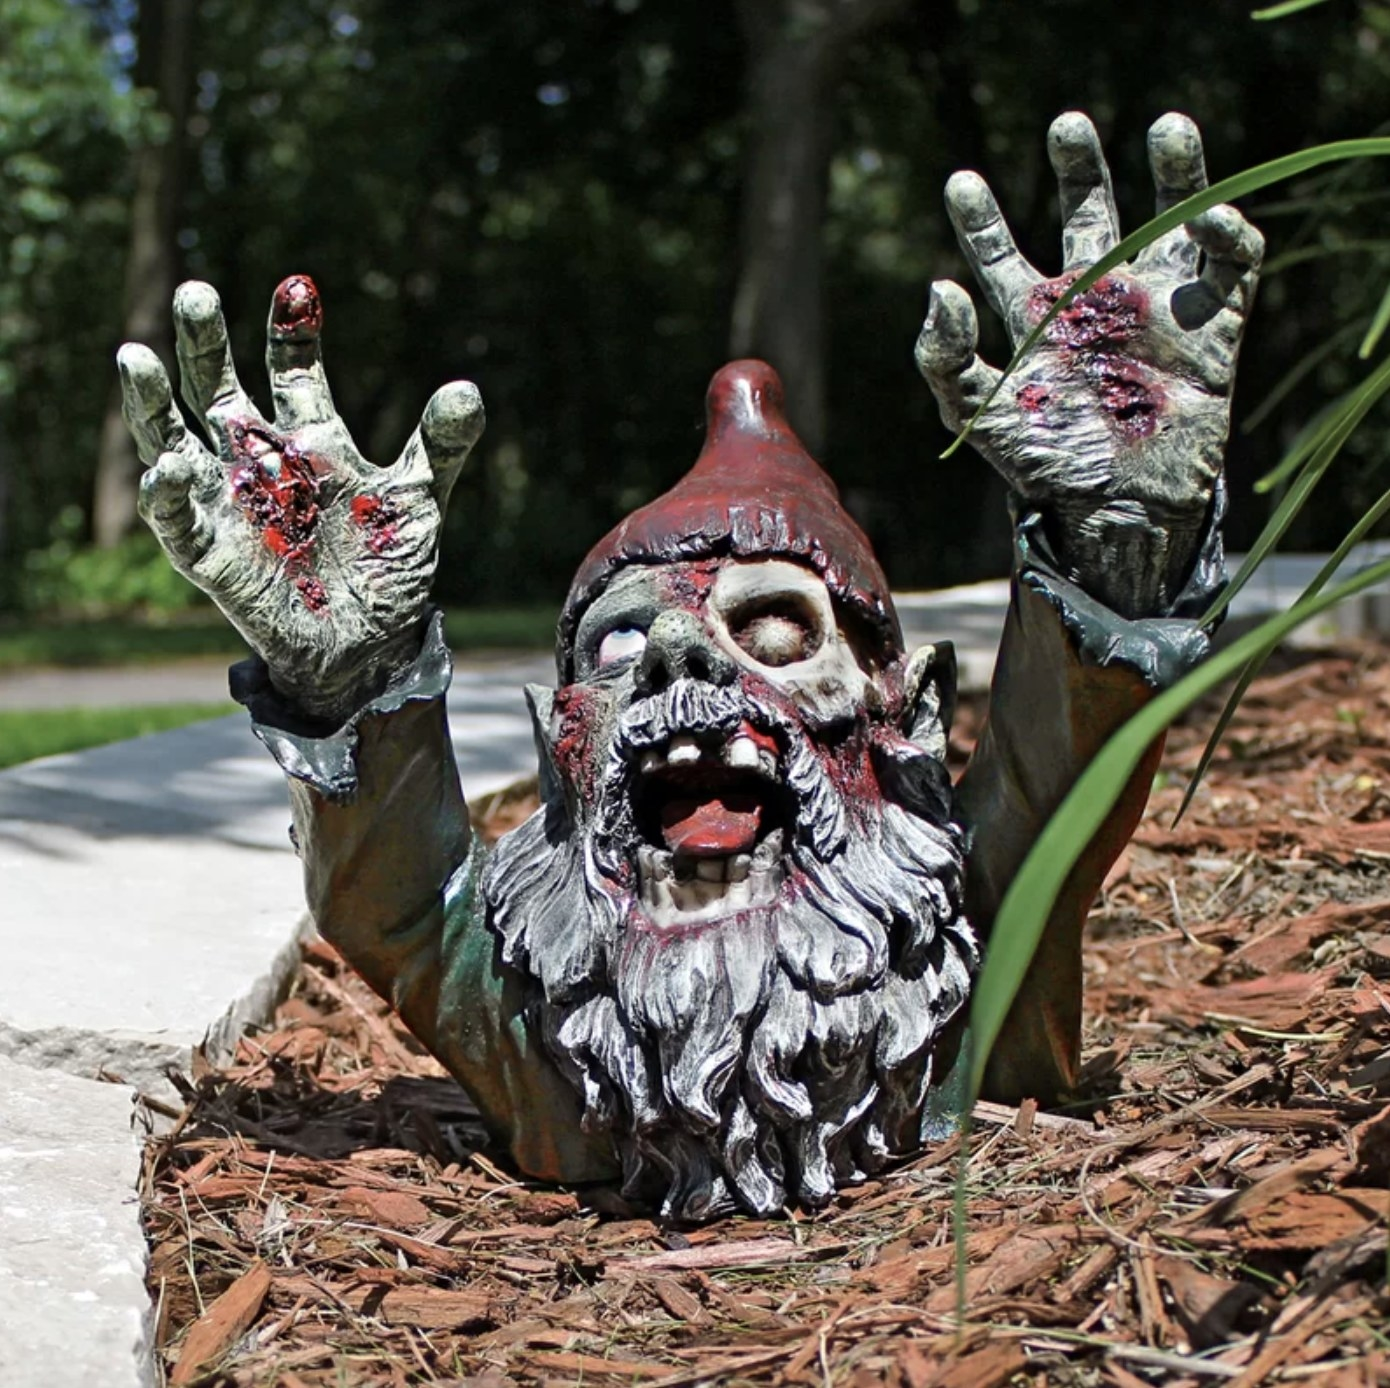 The gnombie is reaching upward with their hands outstretched and mouth opened wide and blood and peeling skin